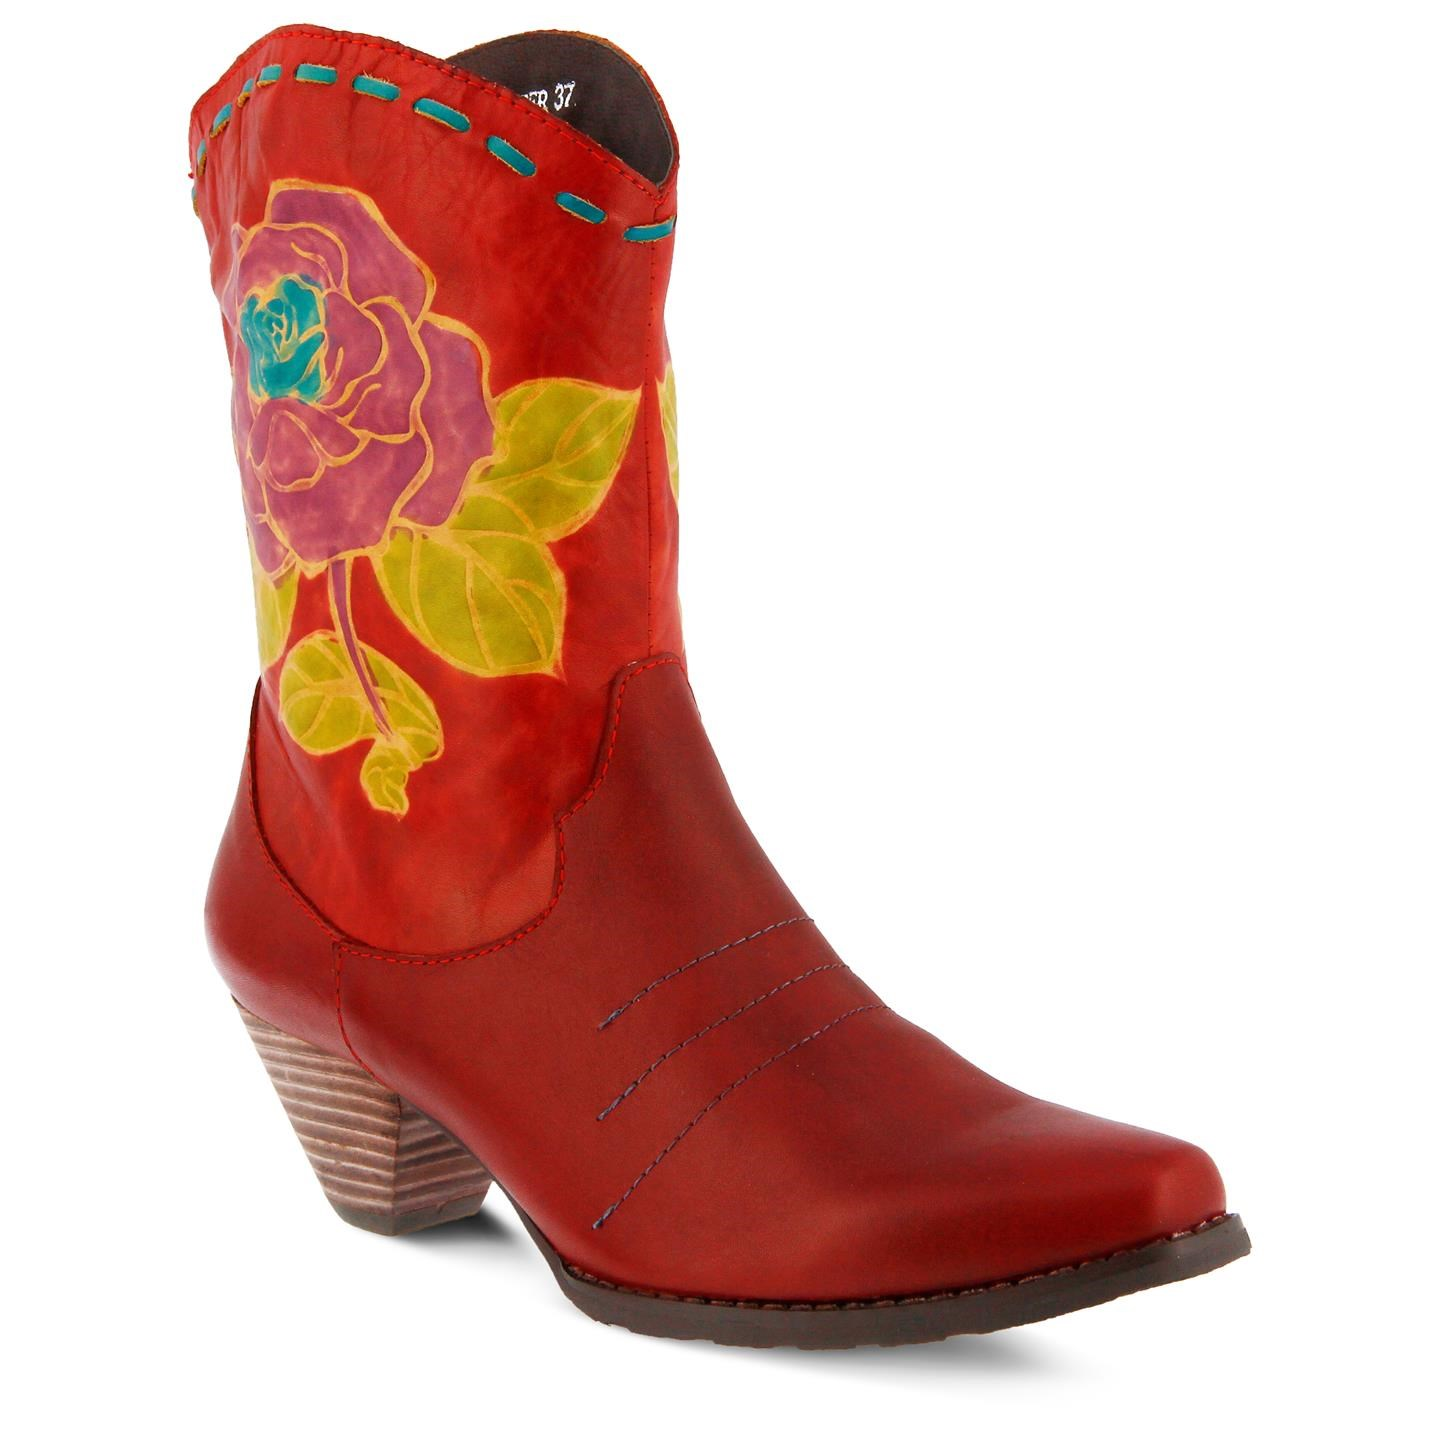 L'Artiste Aster By Spring Step Red Leather Boots 39 EU / 8.5 US Women